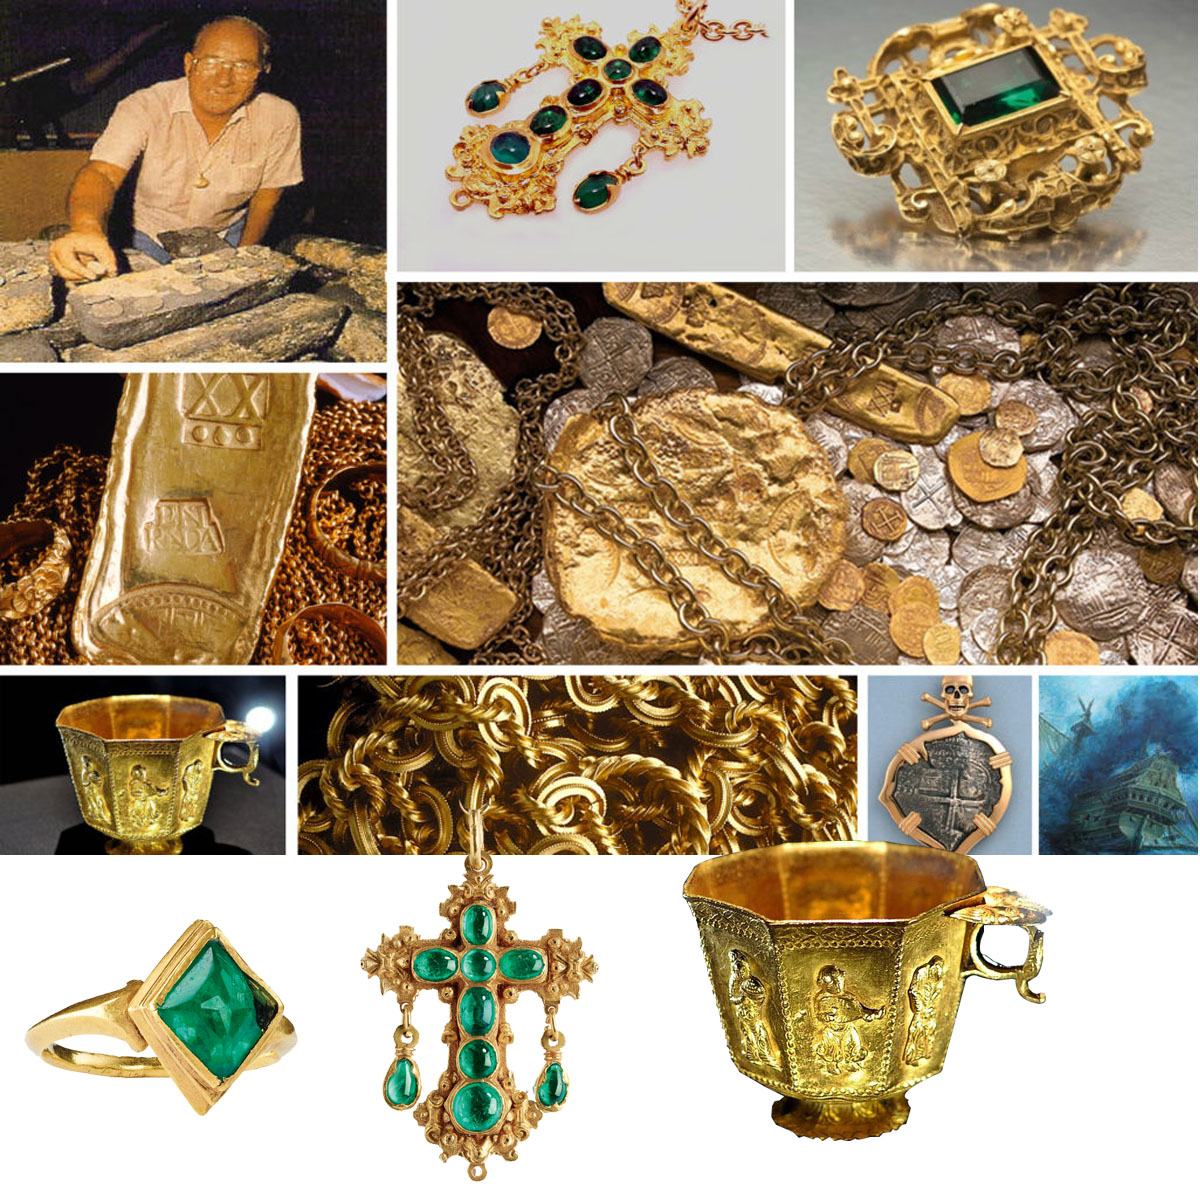 See Pirate Treasure At Mel Fisher's Museum